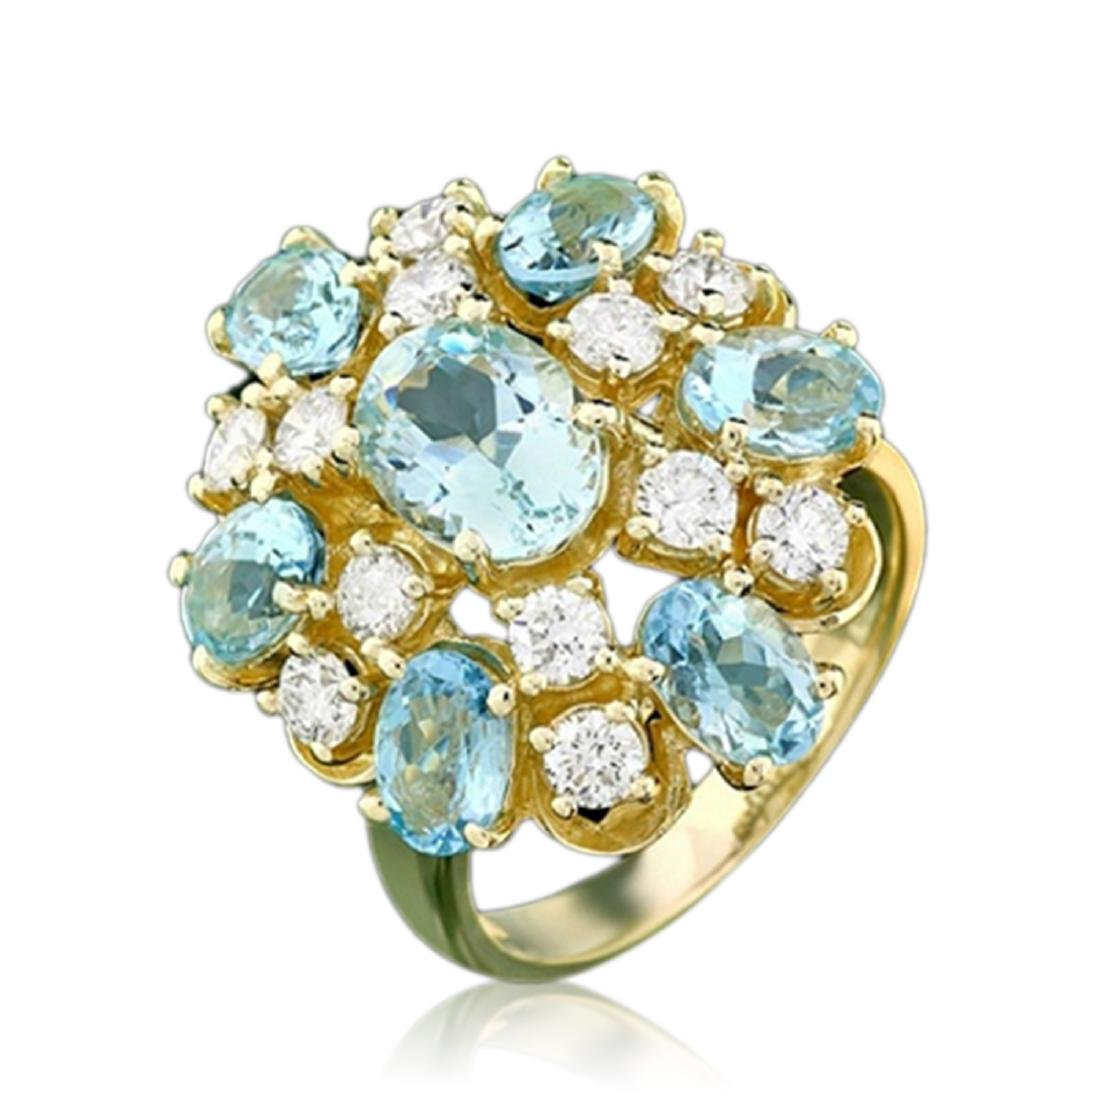 4.66 Carat Natural Aquamarine 18K Solid Yellow Gold